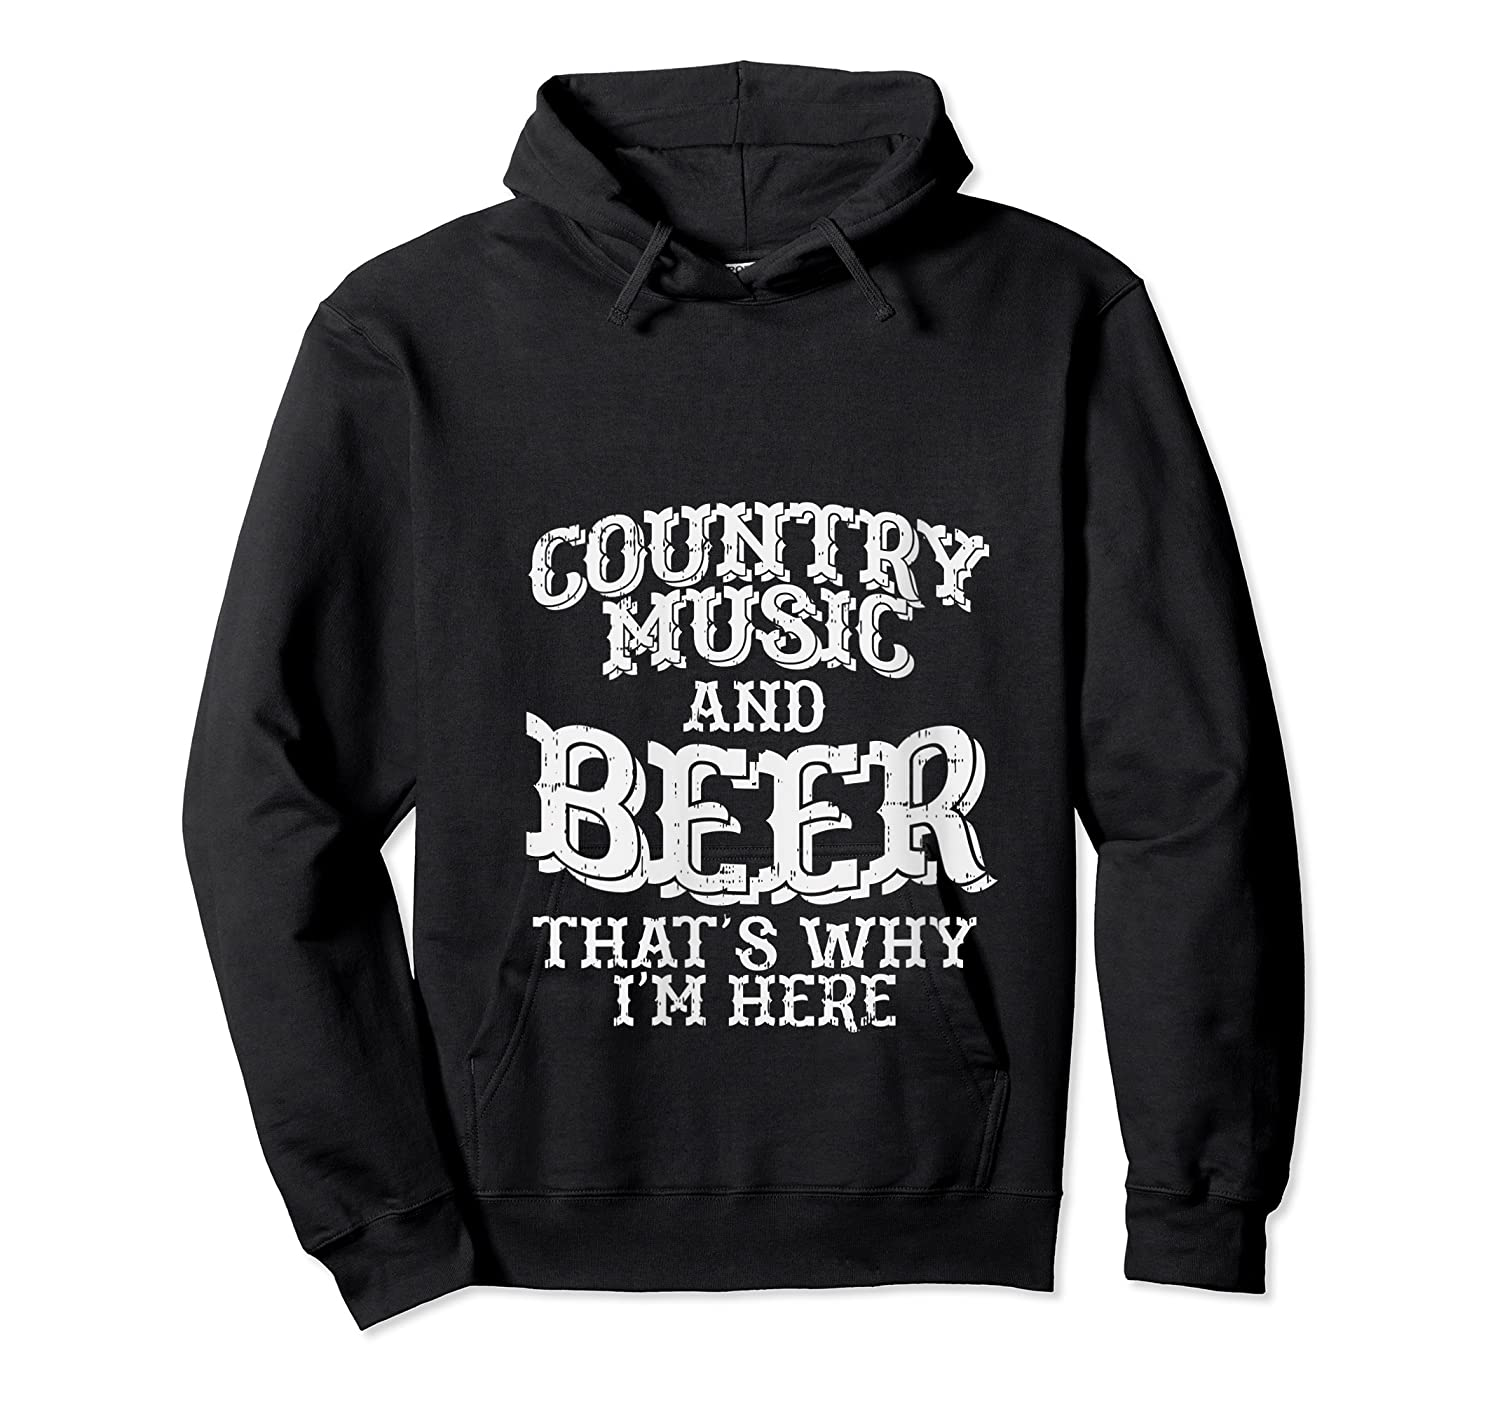 Country Music And Beer Thats Why Im Here Funny Vacation Gift T-shirt Unisex Pullover Hoodie